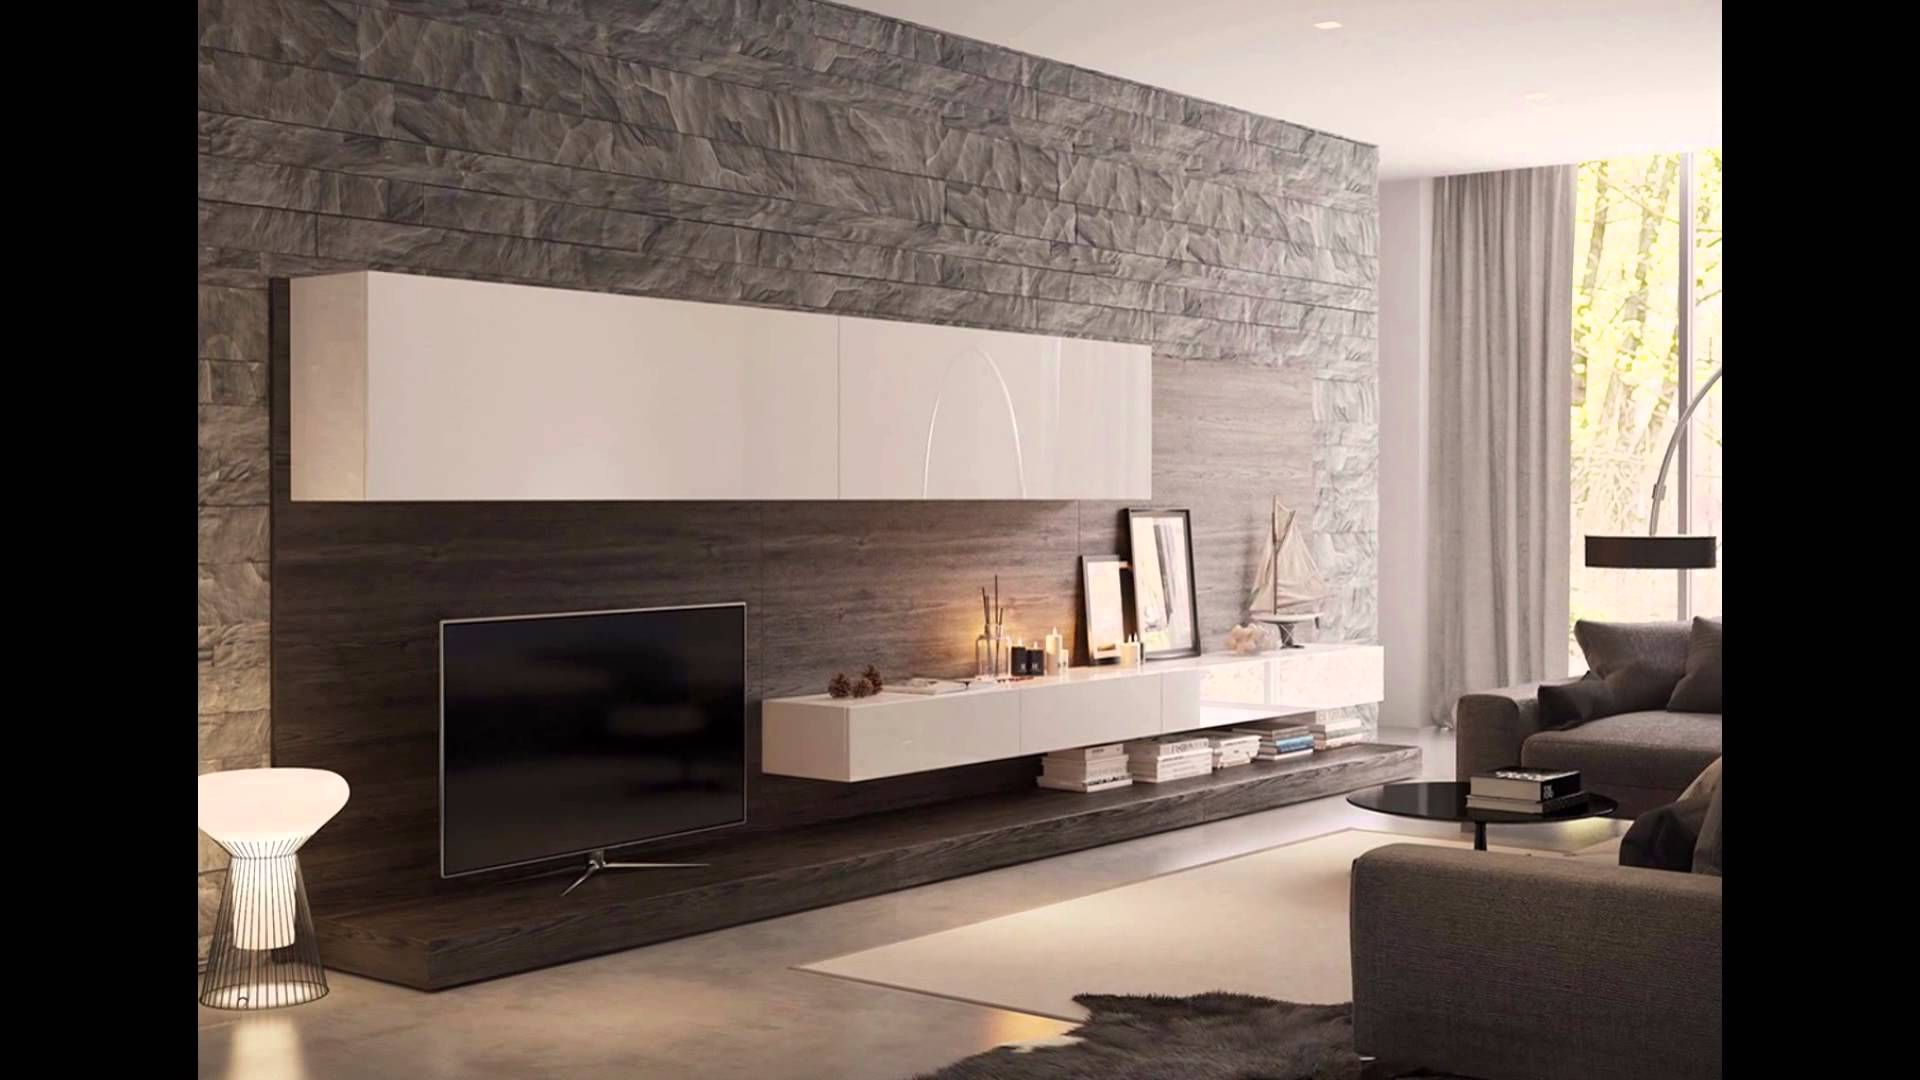 Top 5 Living Room Paint Ideas To Make Your Room Pop 2020 Dhw